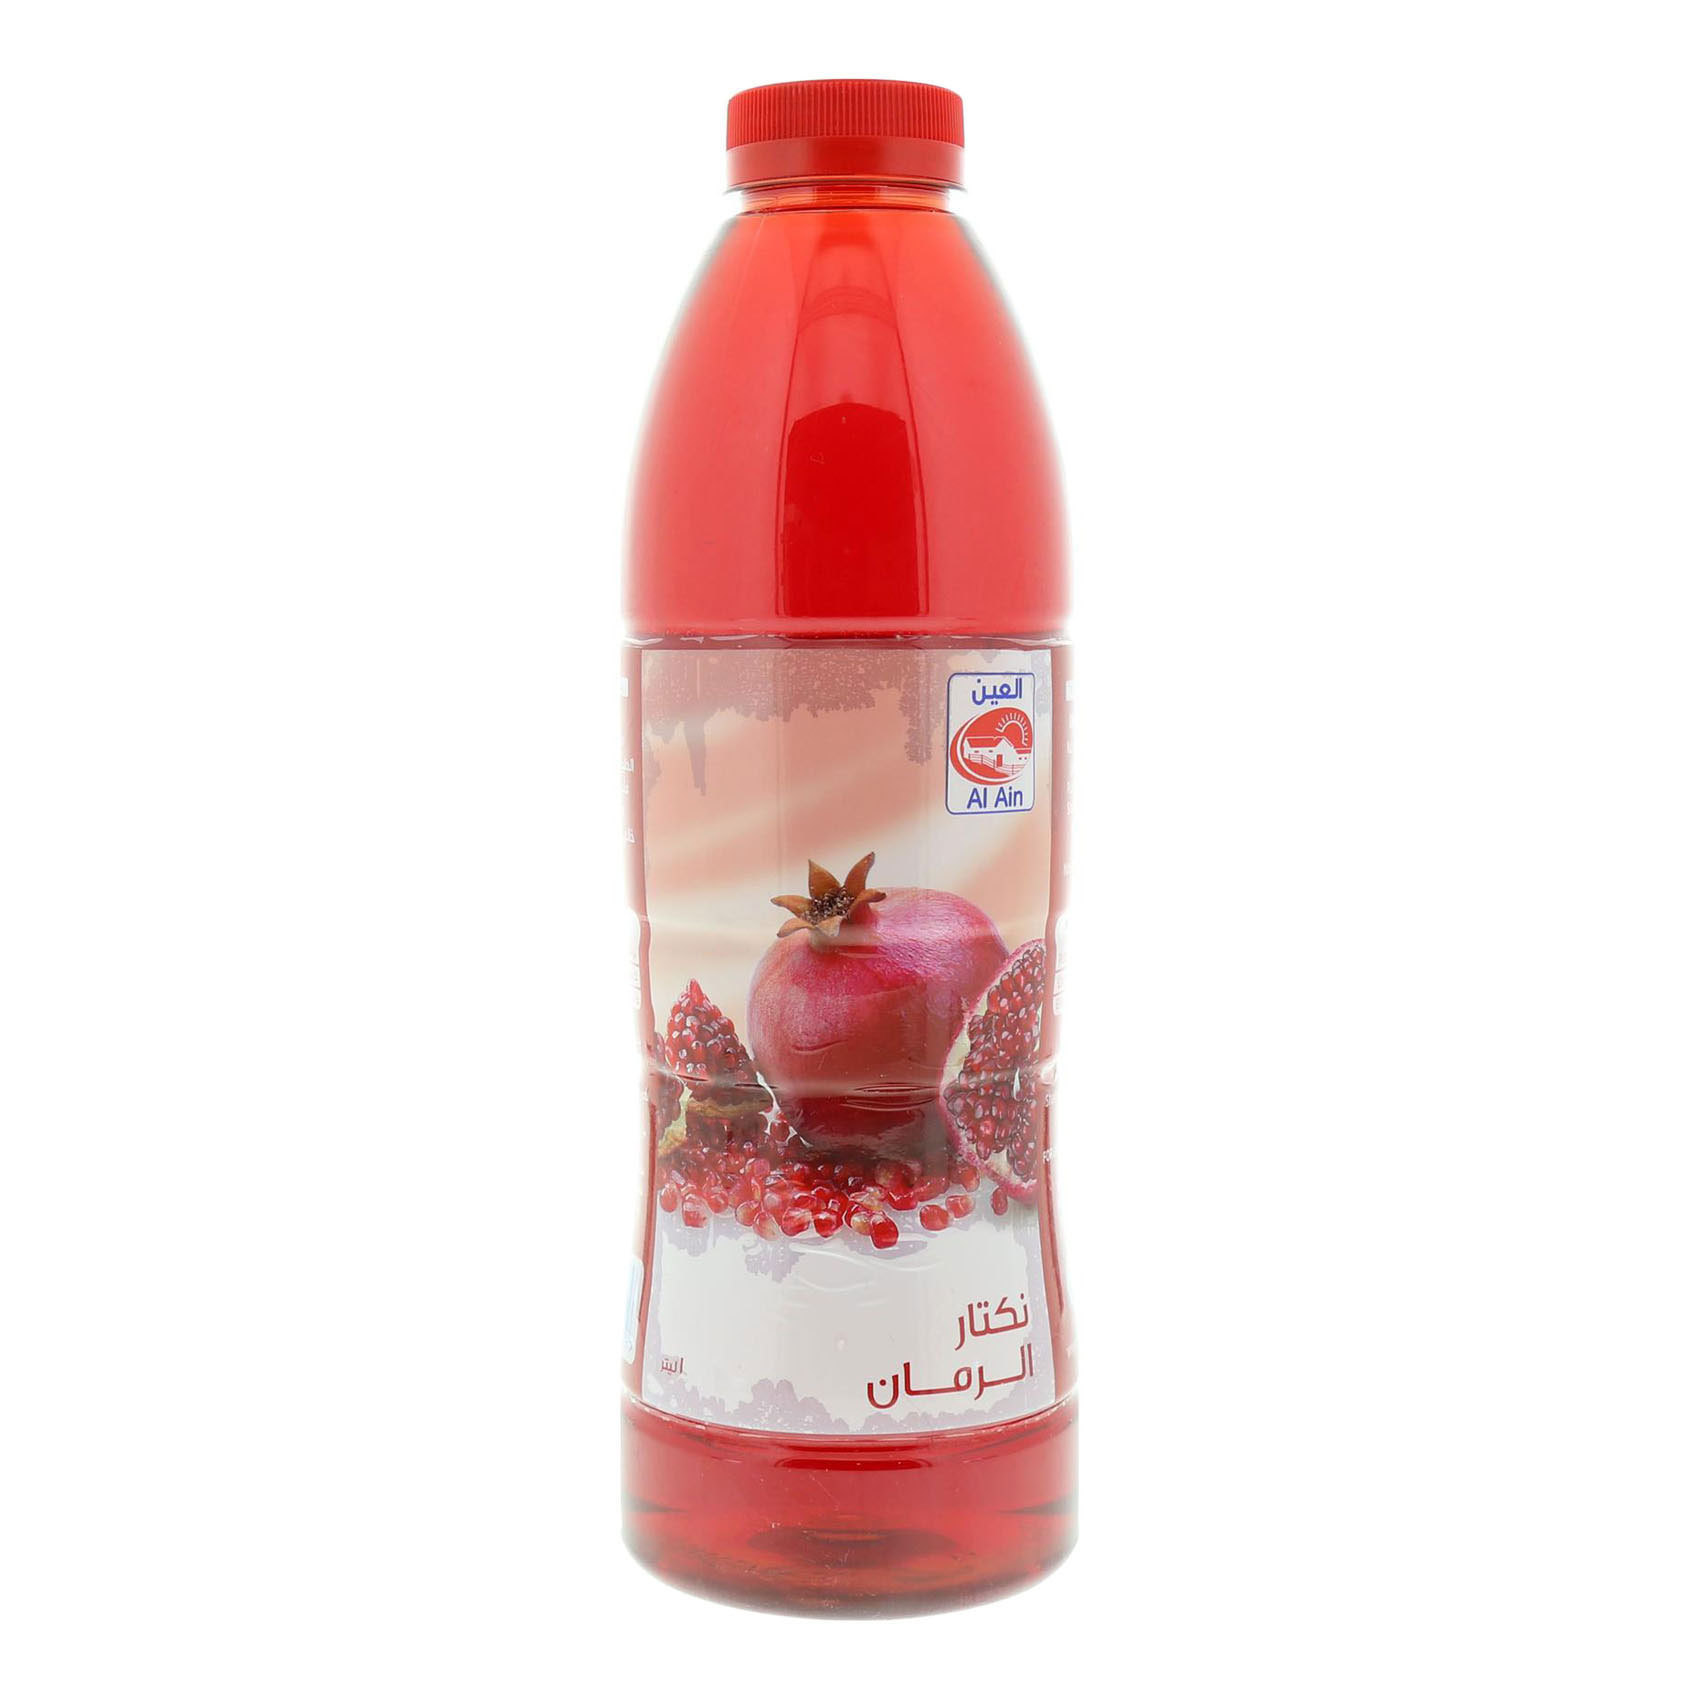 AL AIN JUICE POMEGRANATE 1L